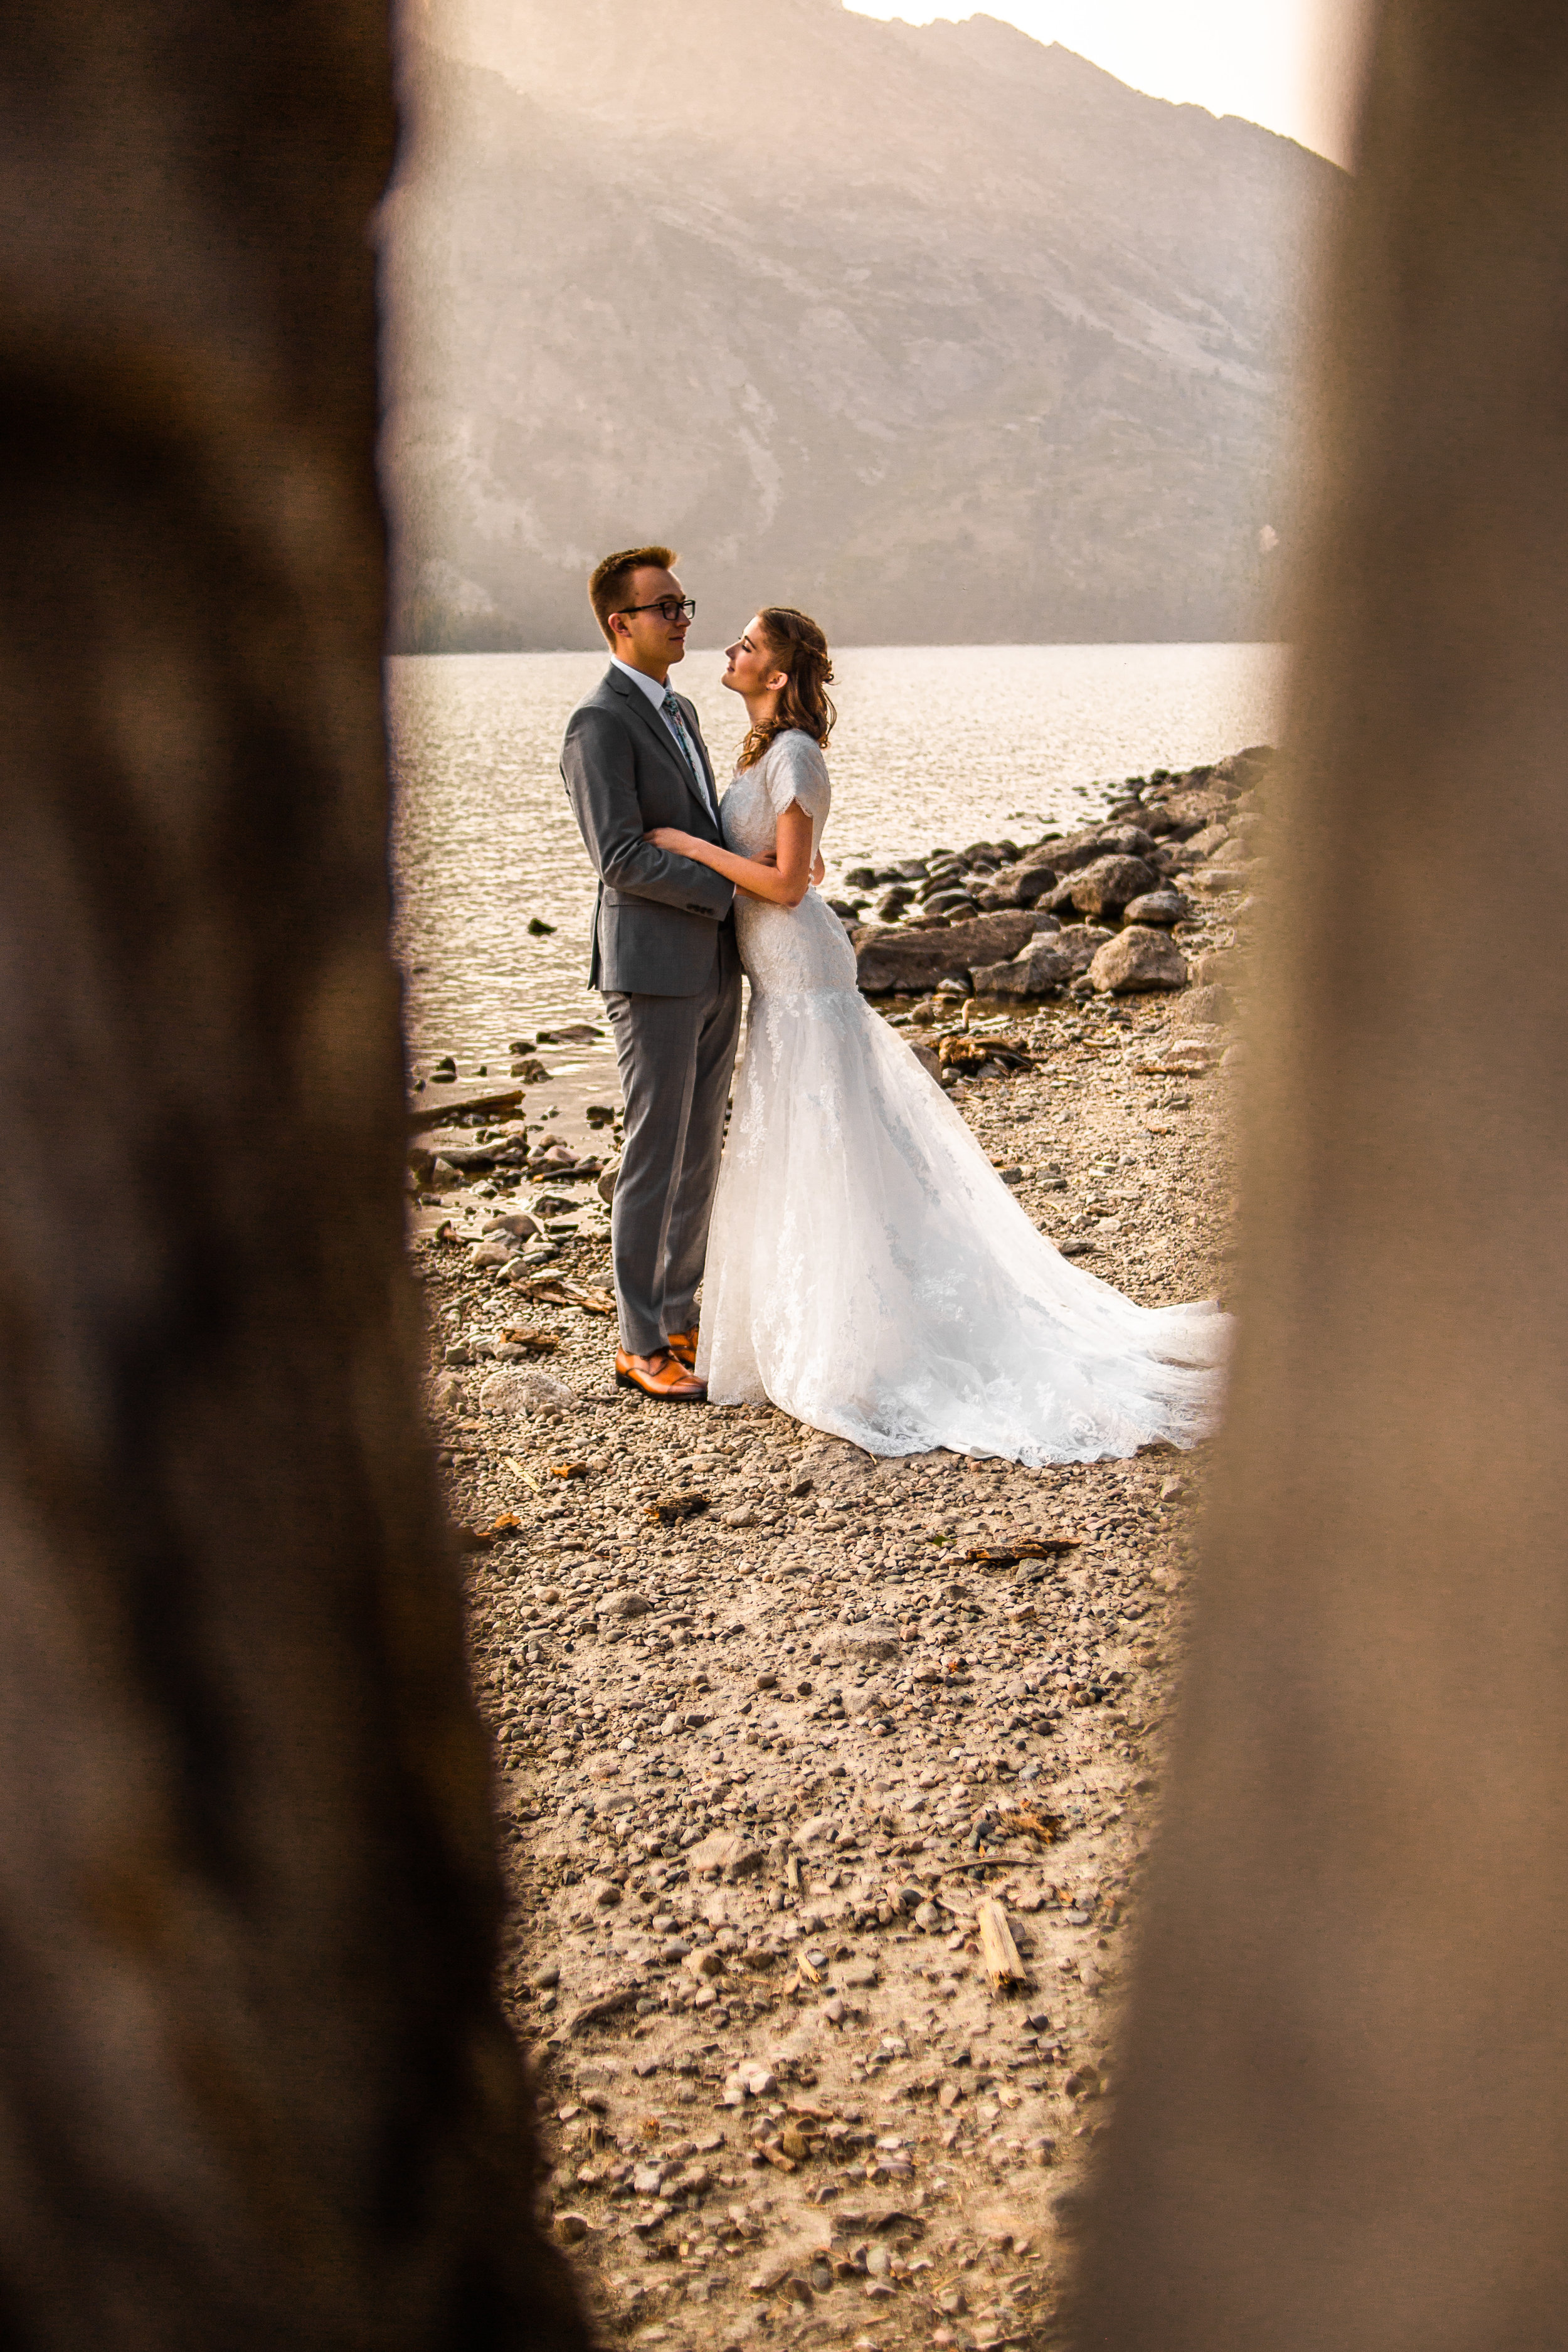 Grand-Teton-National-Park-Bridal-Session32.jpg